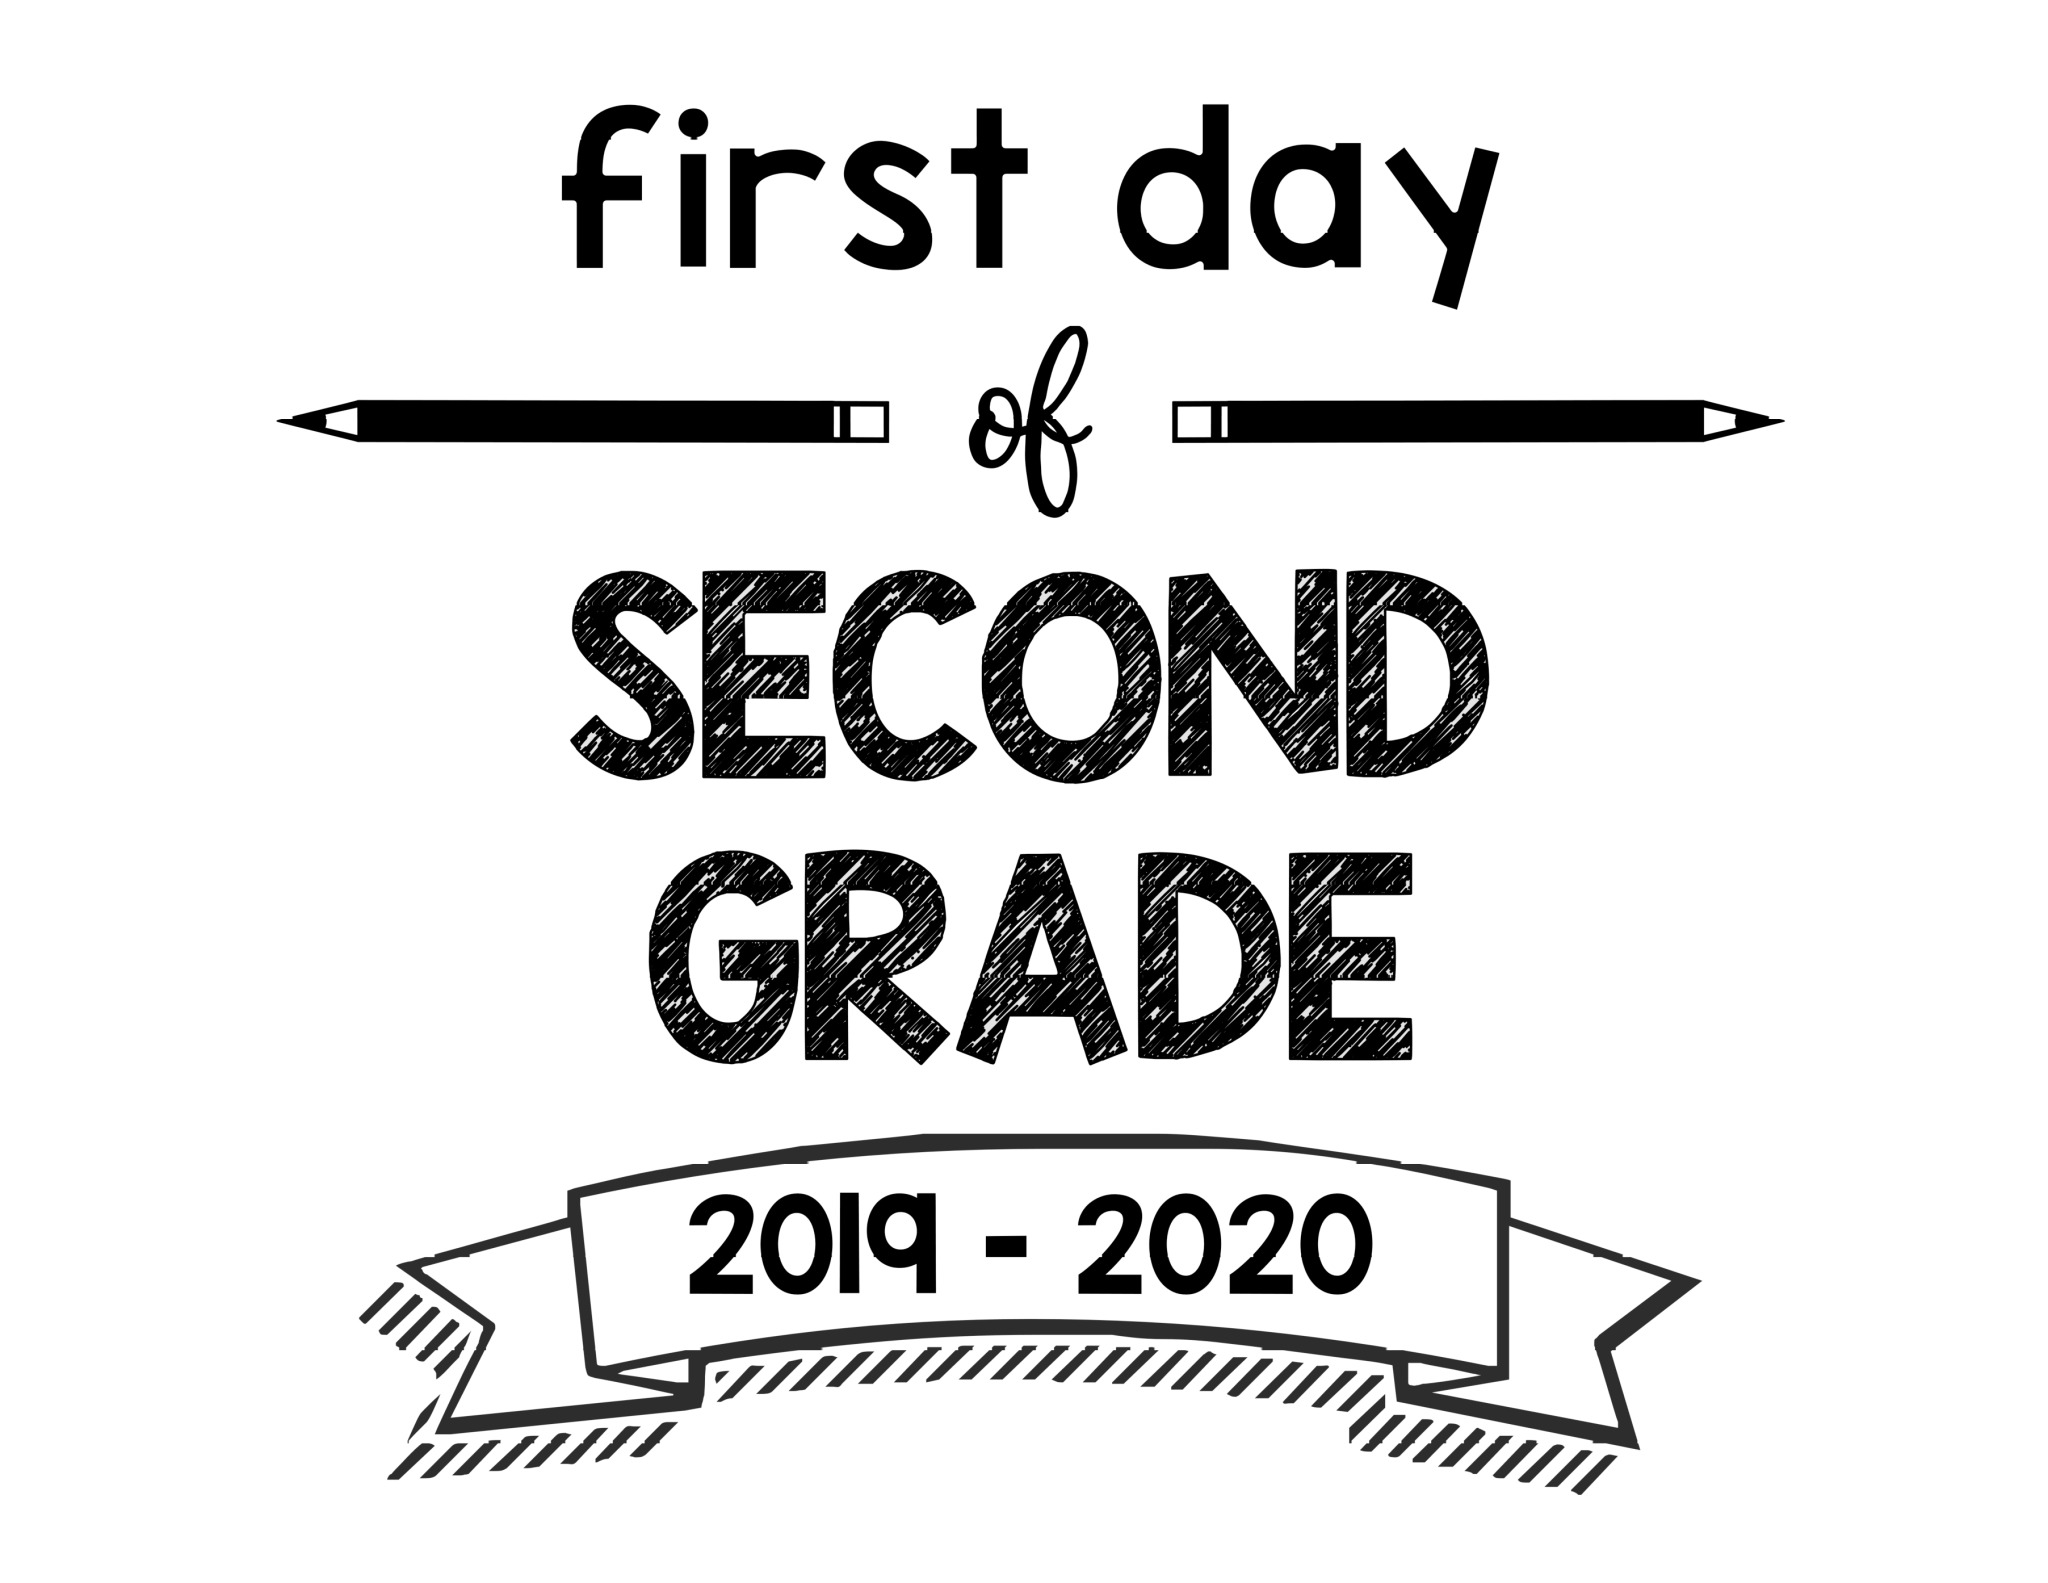 picture about Last Day of 2nd Grade Printable called 1st Working day of Faculty Printable Signs and symptoms 2019 - 2020 Higher education Yr